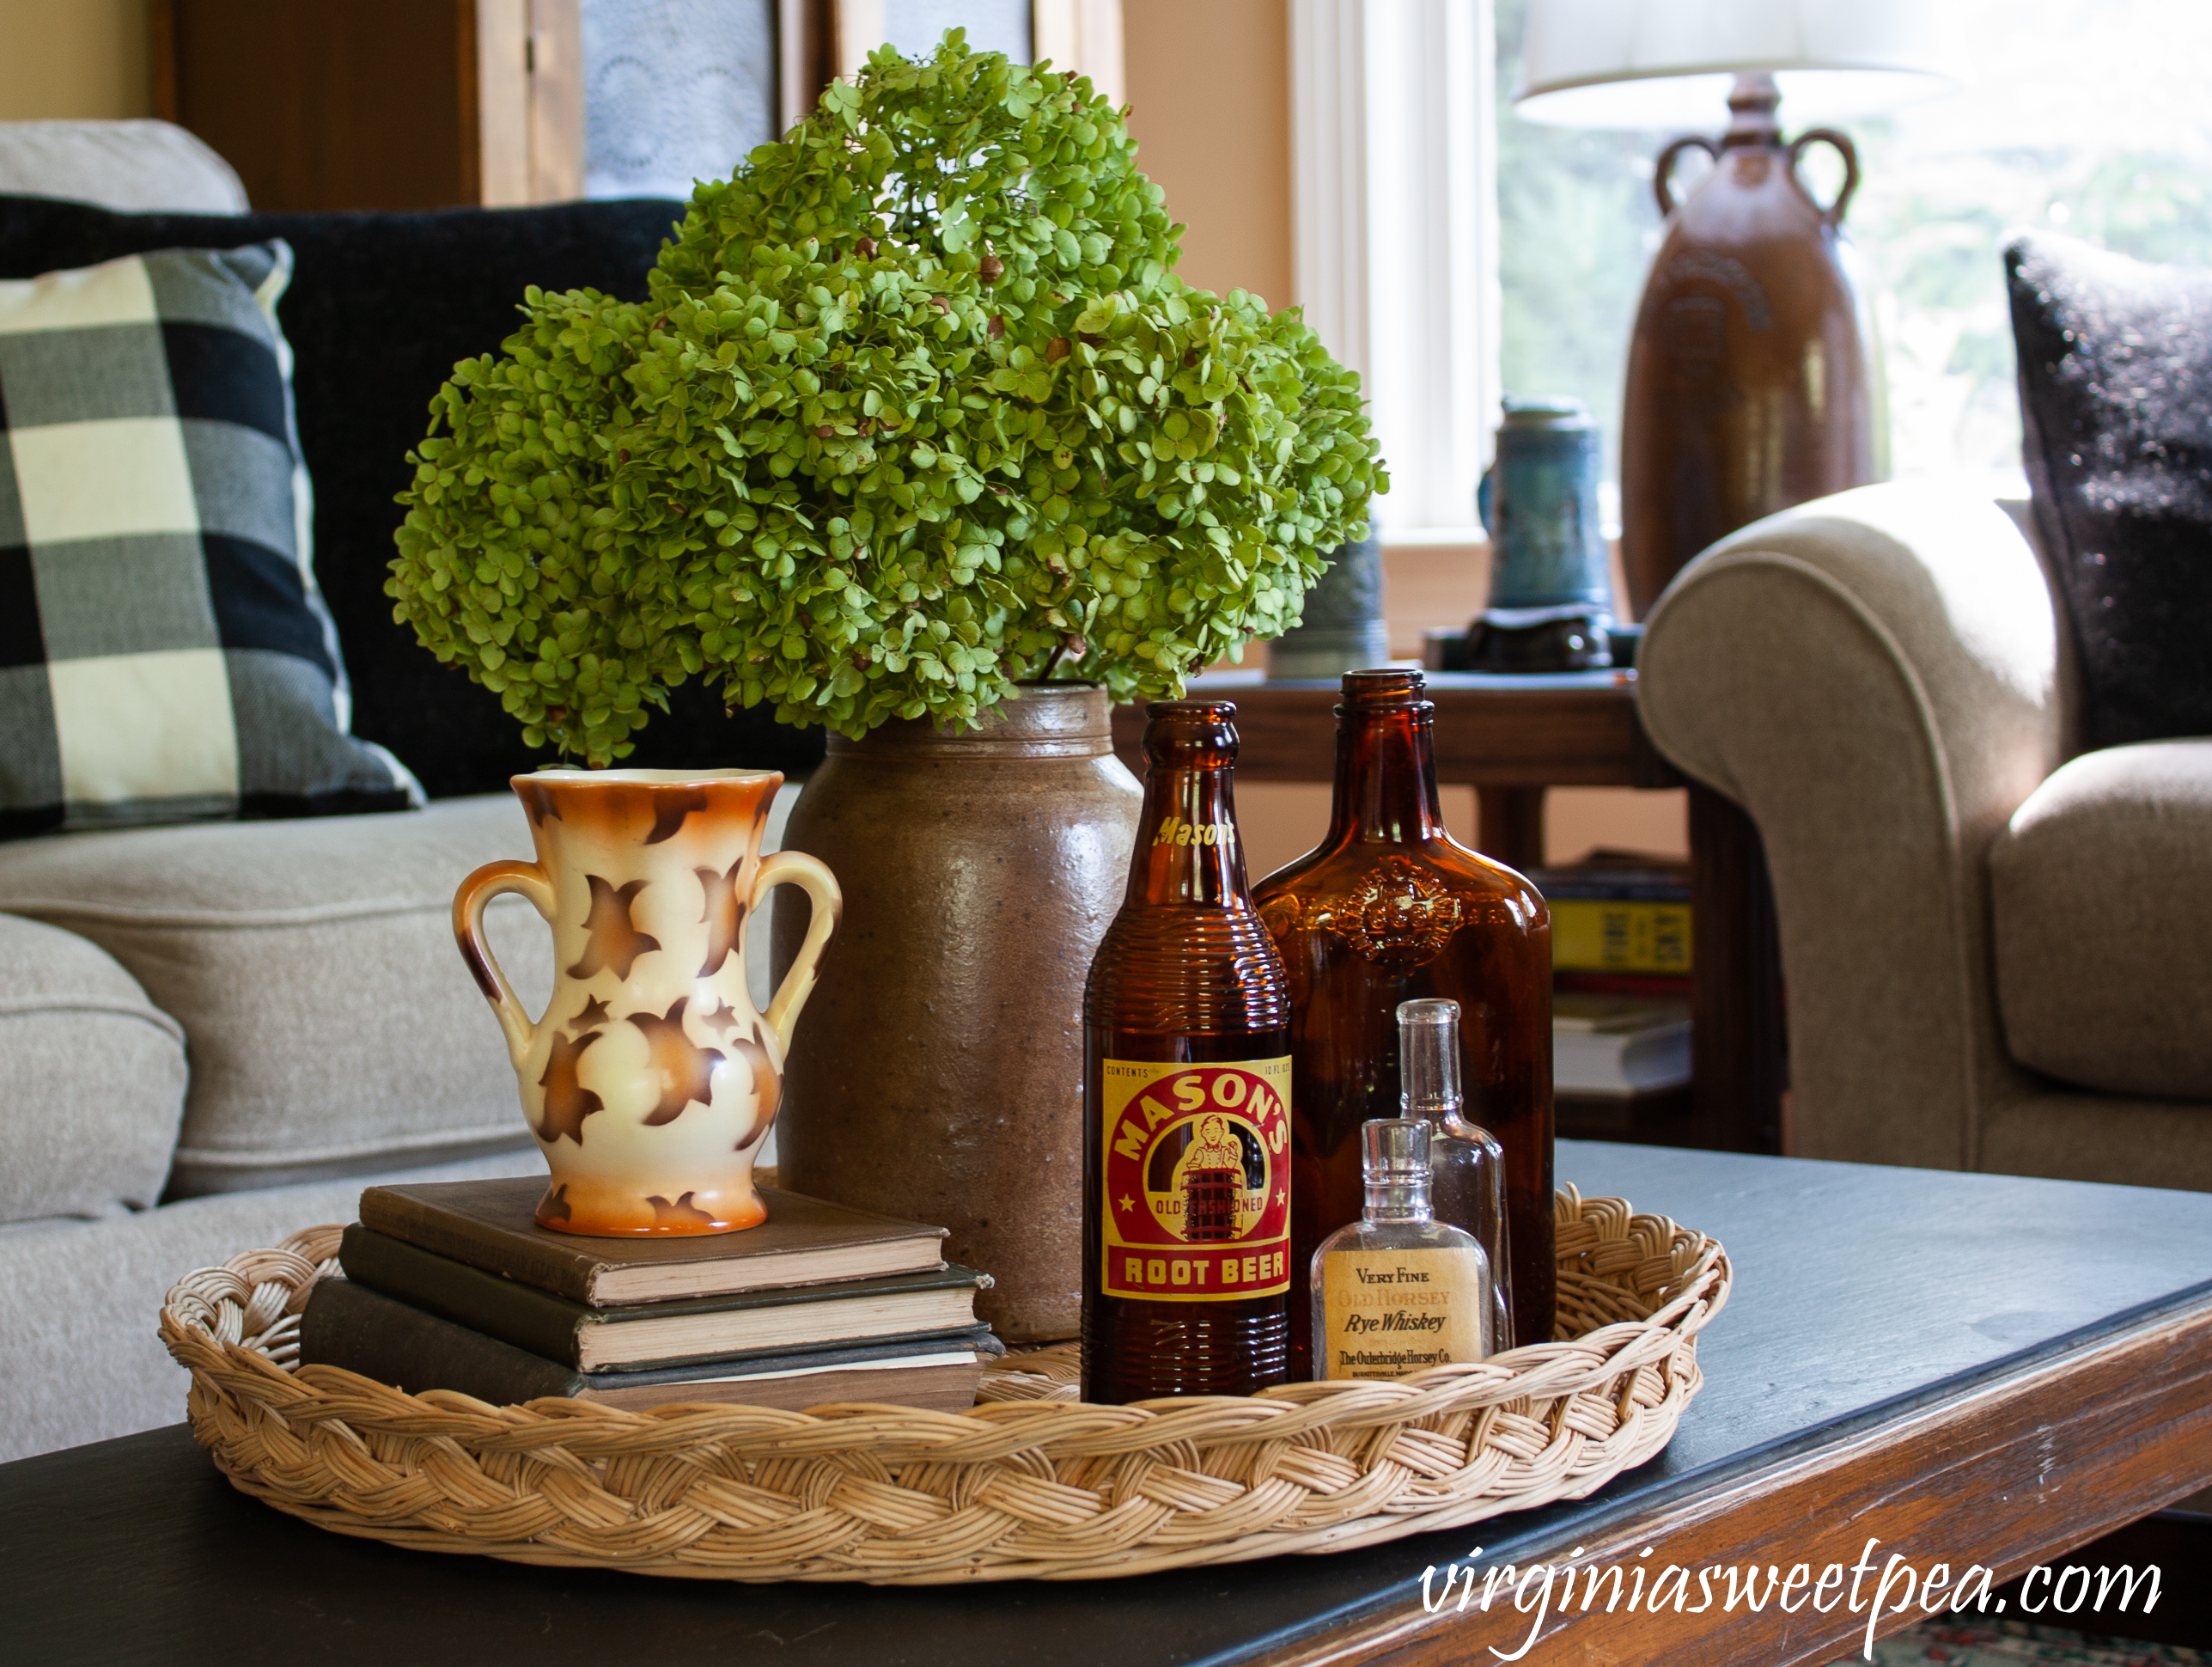 Early Fall coffee table vignette with Hydrangea in an antique crock, vintage bottles and books, and a vintage Czechoslovakian vase.